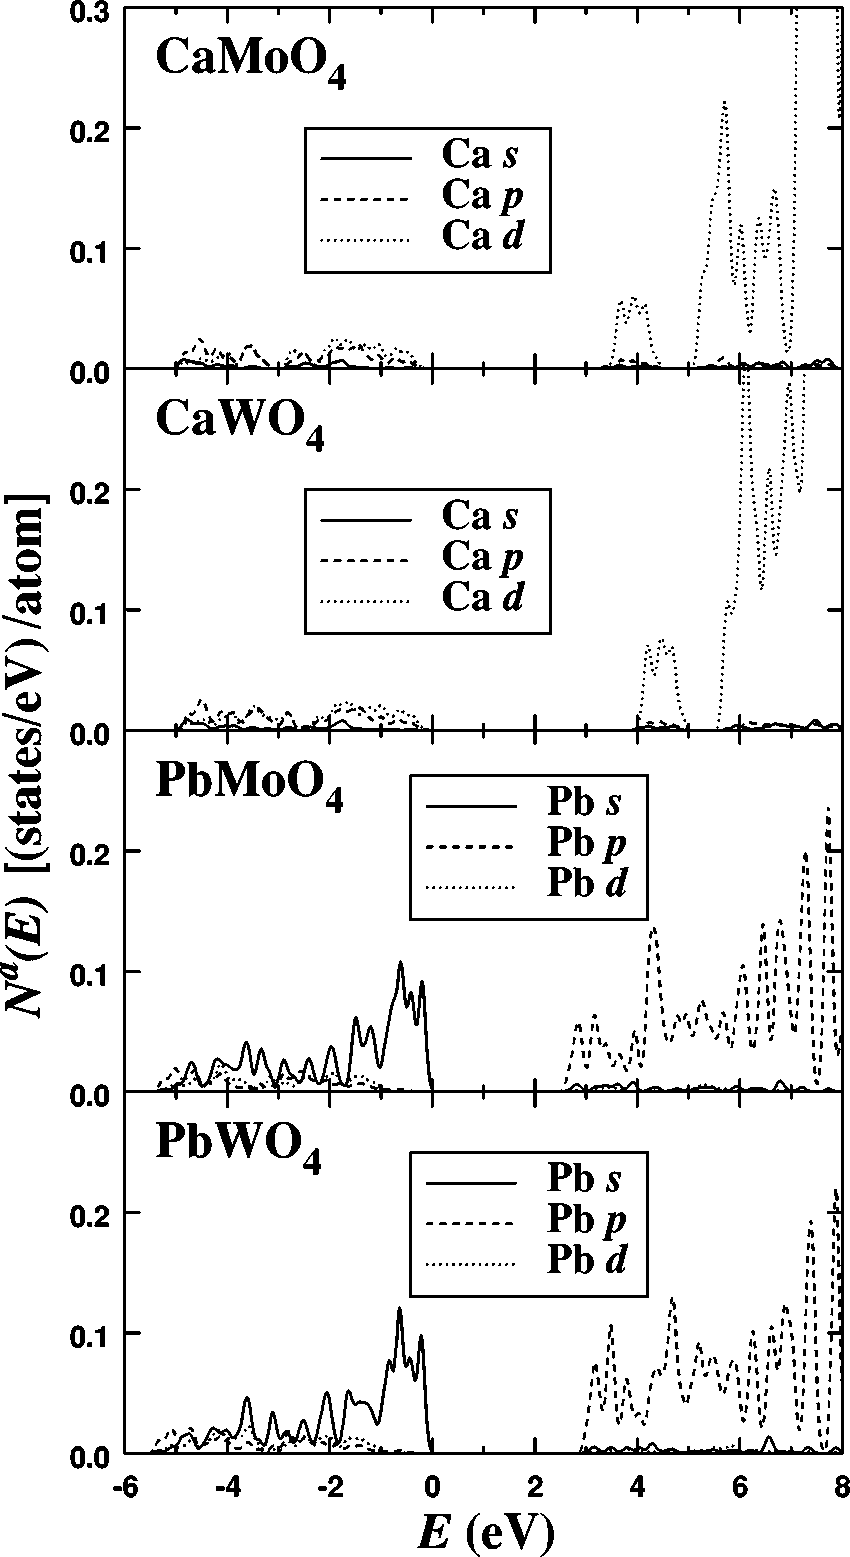 hight resolution of ca and pb atomic orbital partial densities of states for the four abo 4 scheelite